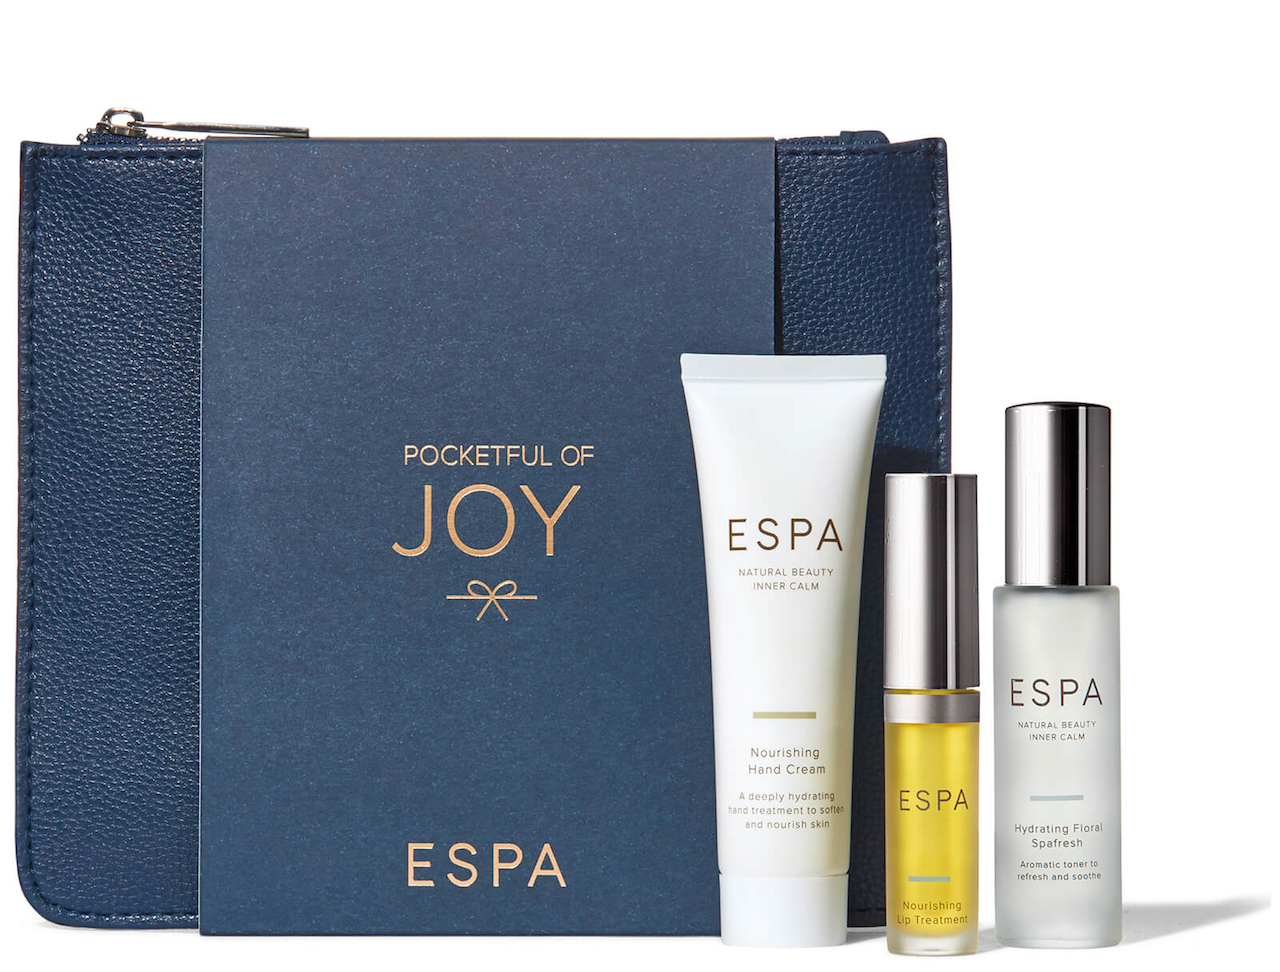 ESPA Christmas gifts at Gresham House Wellness